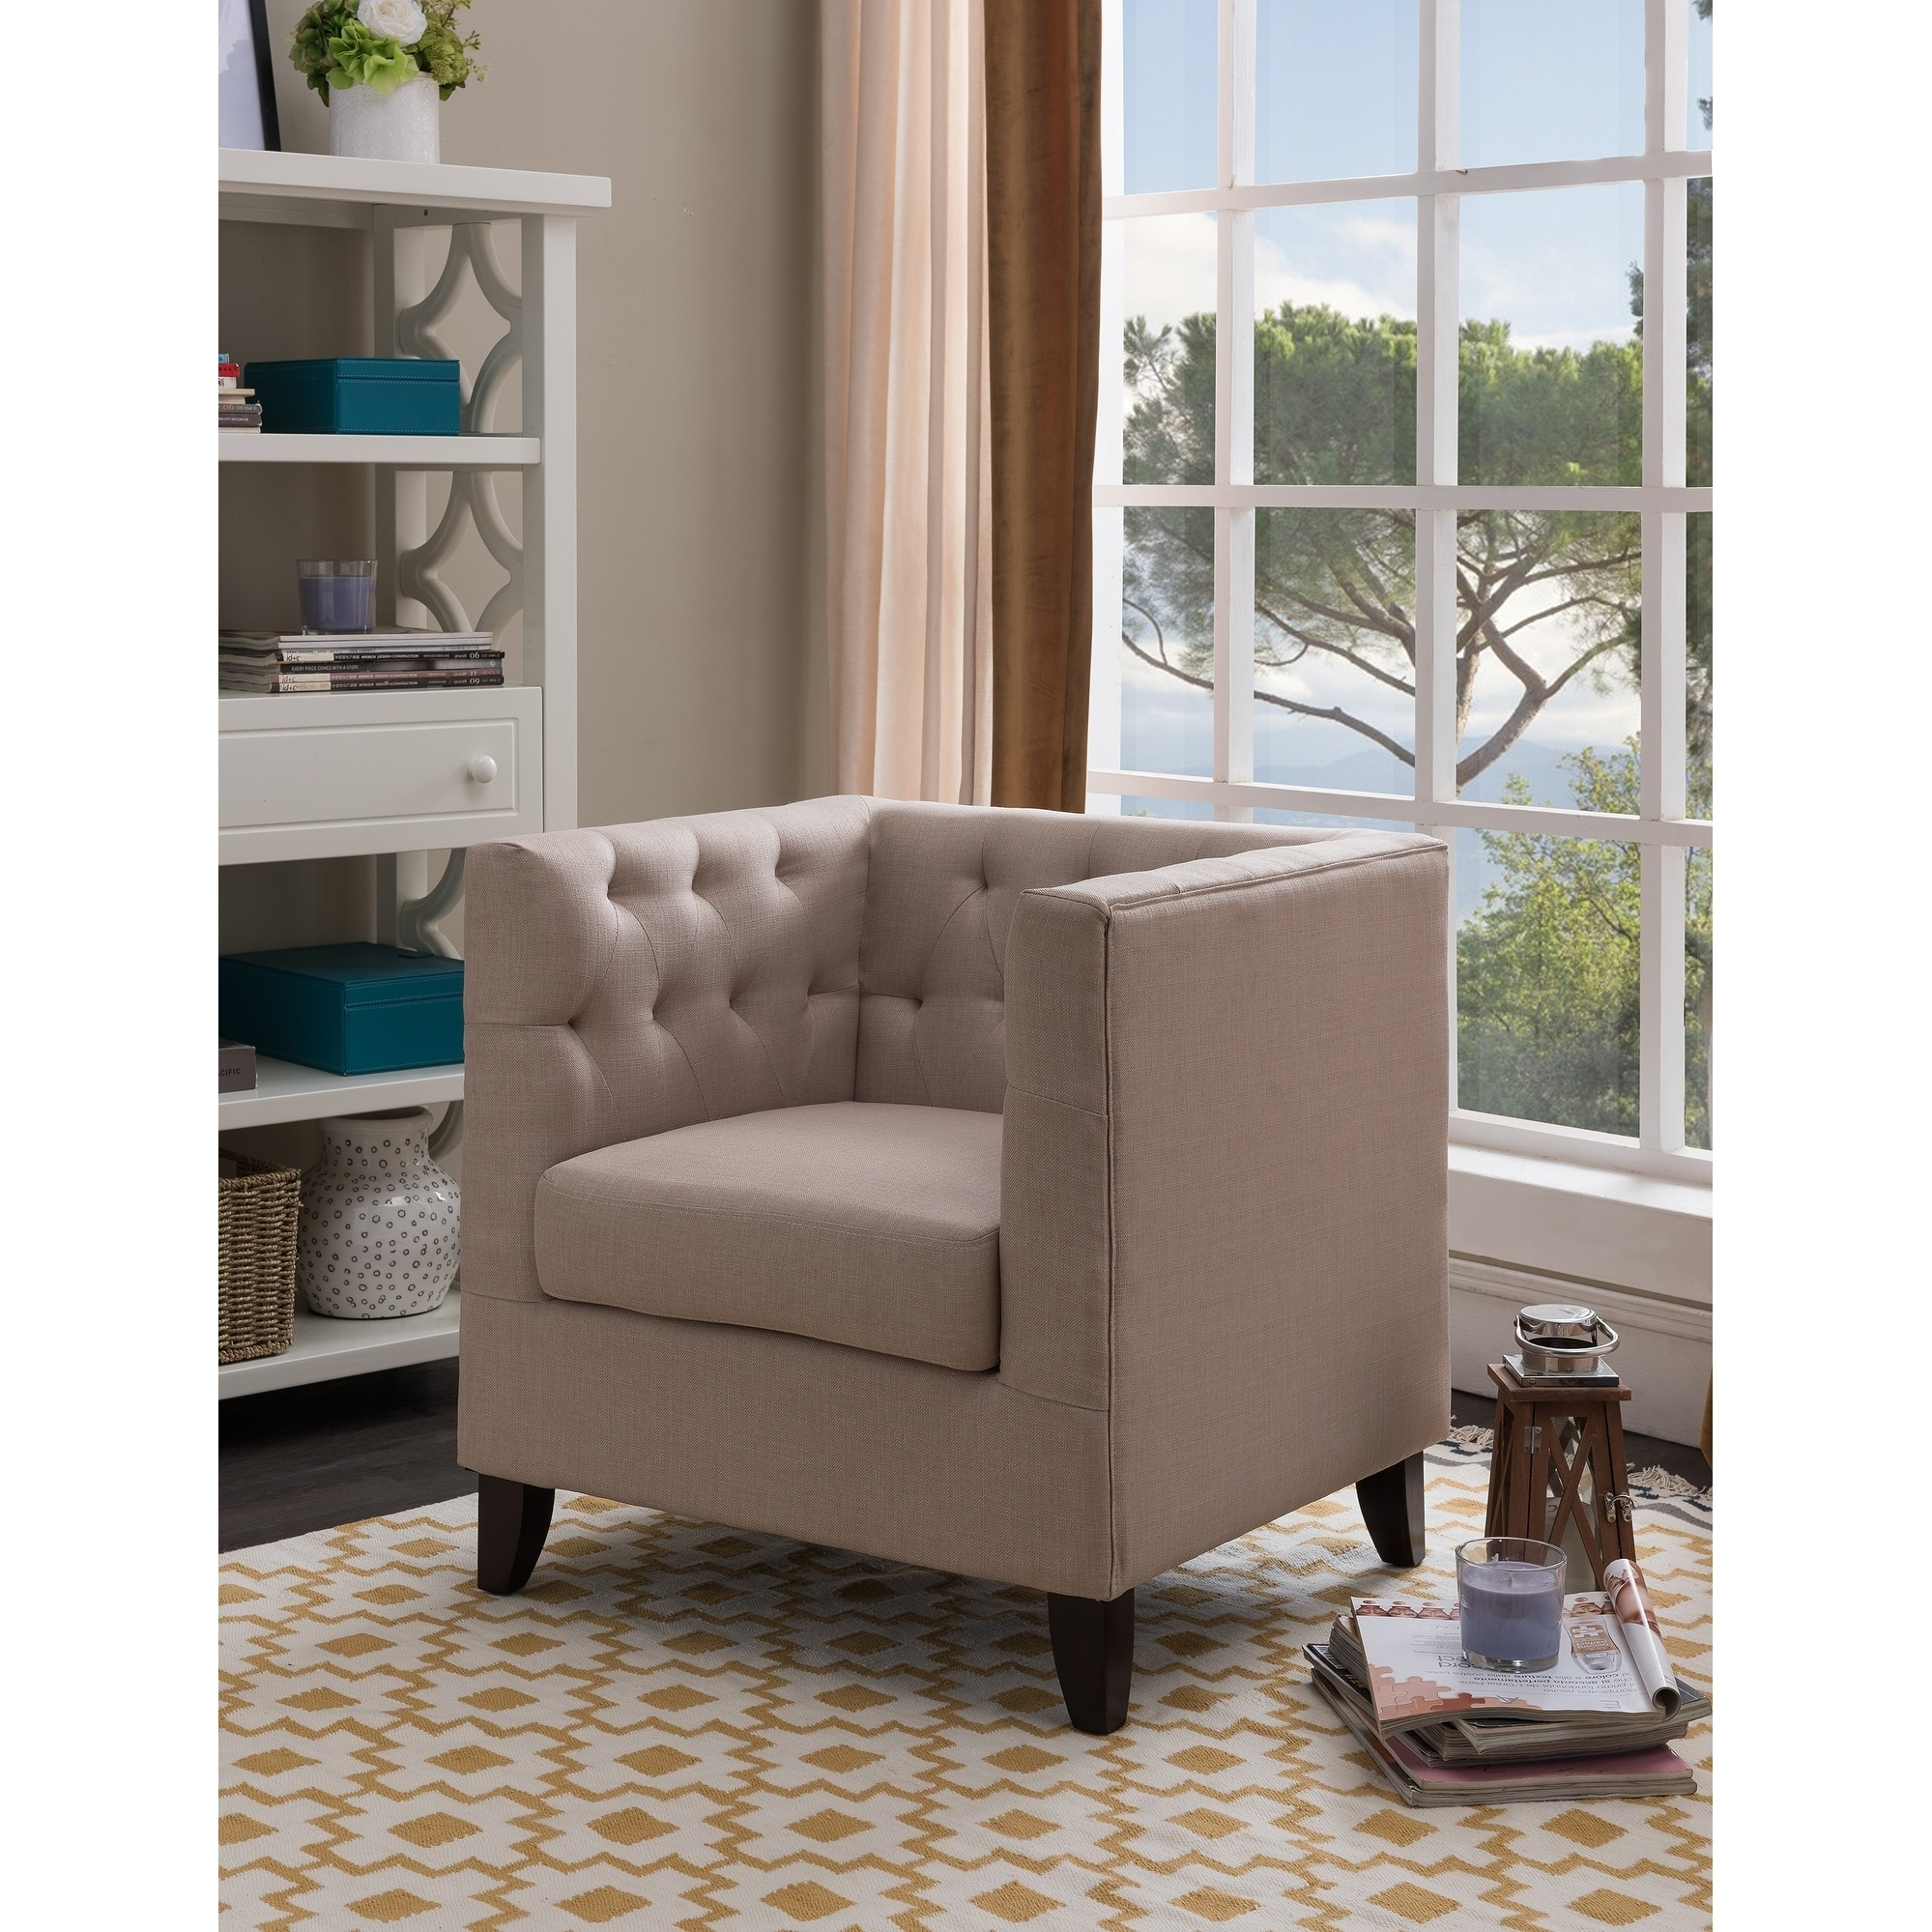 K&B Furniture Cream Fabric/Solid Wood Upholstered Tufted Accent Chair